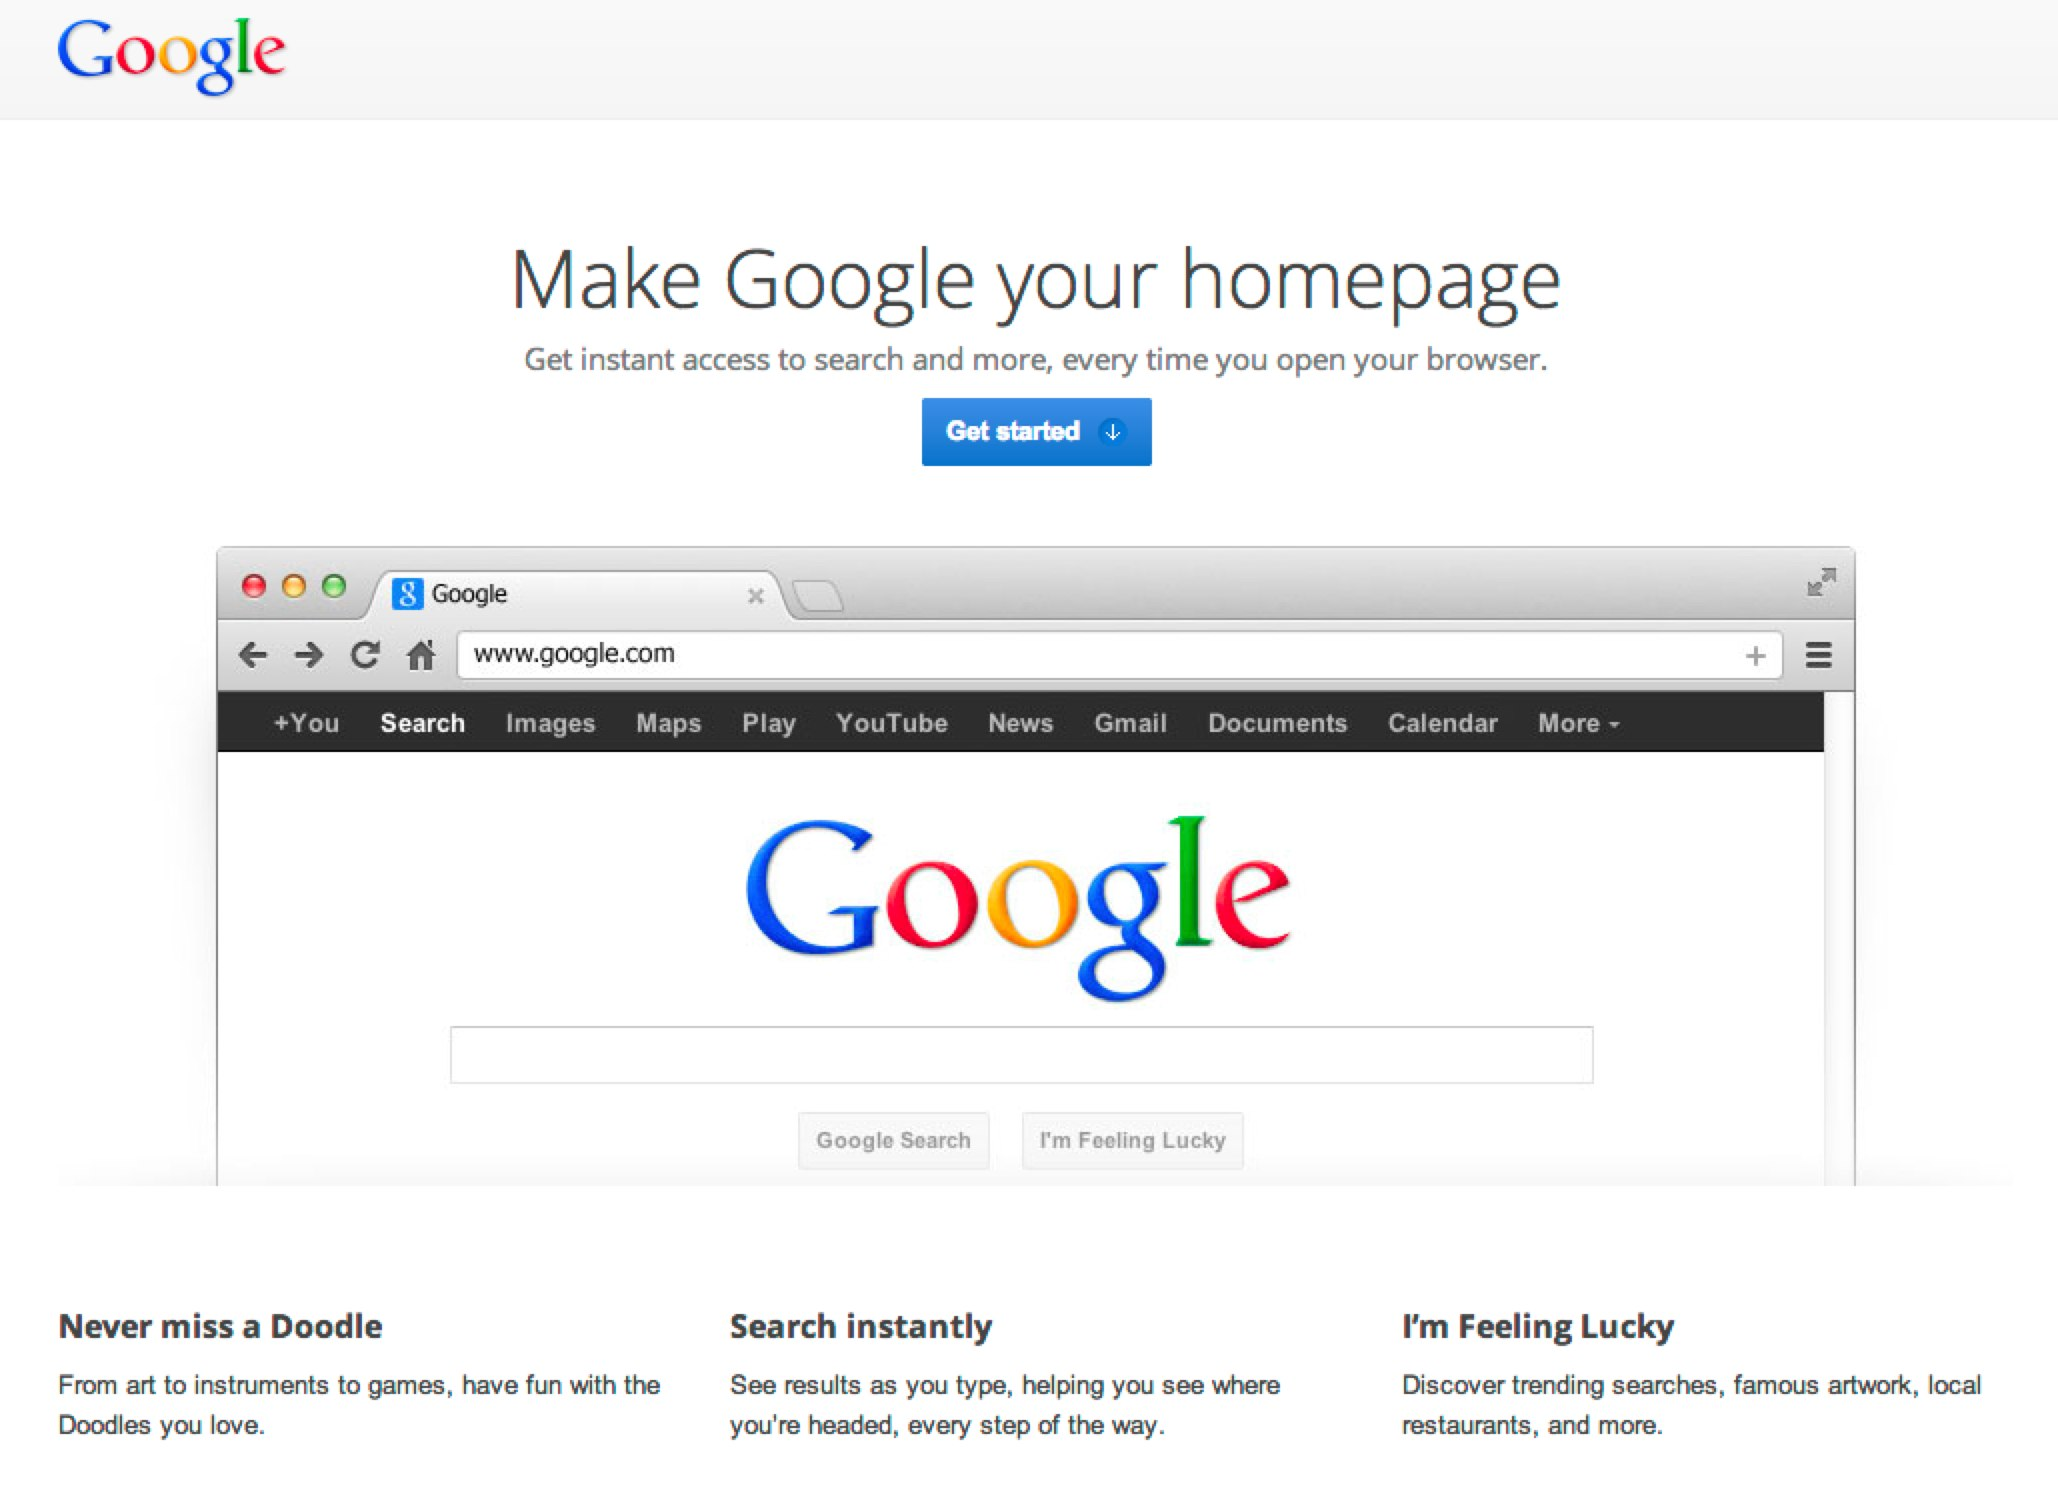 Google Ads Pitch Making Google Your Homepage  eMarketing Wall